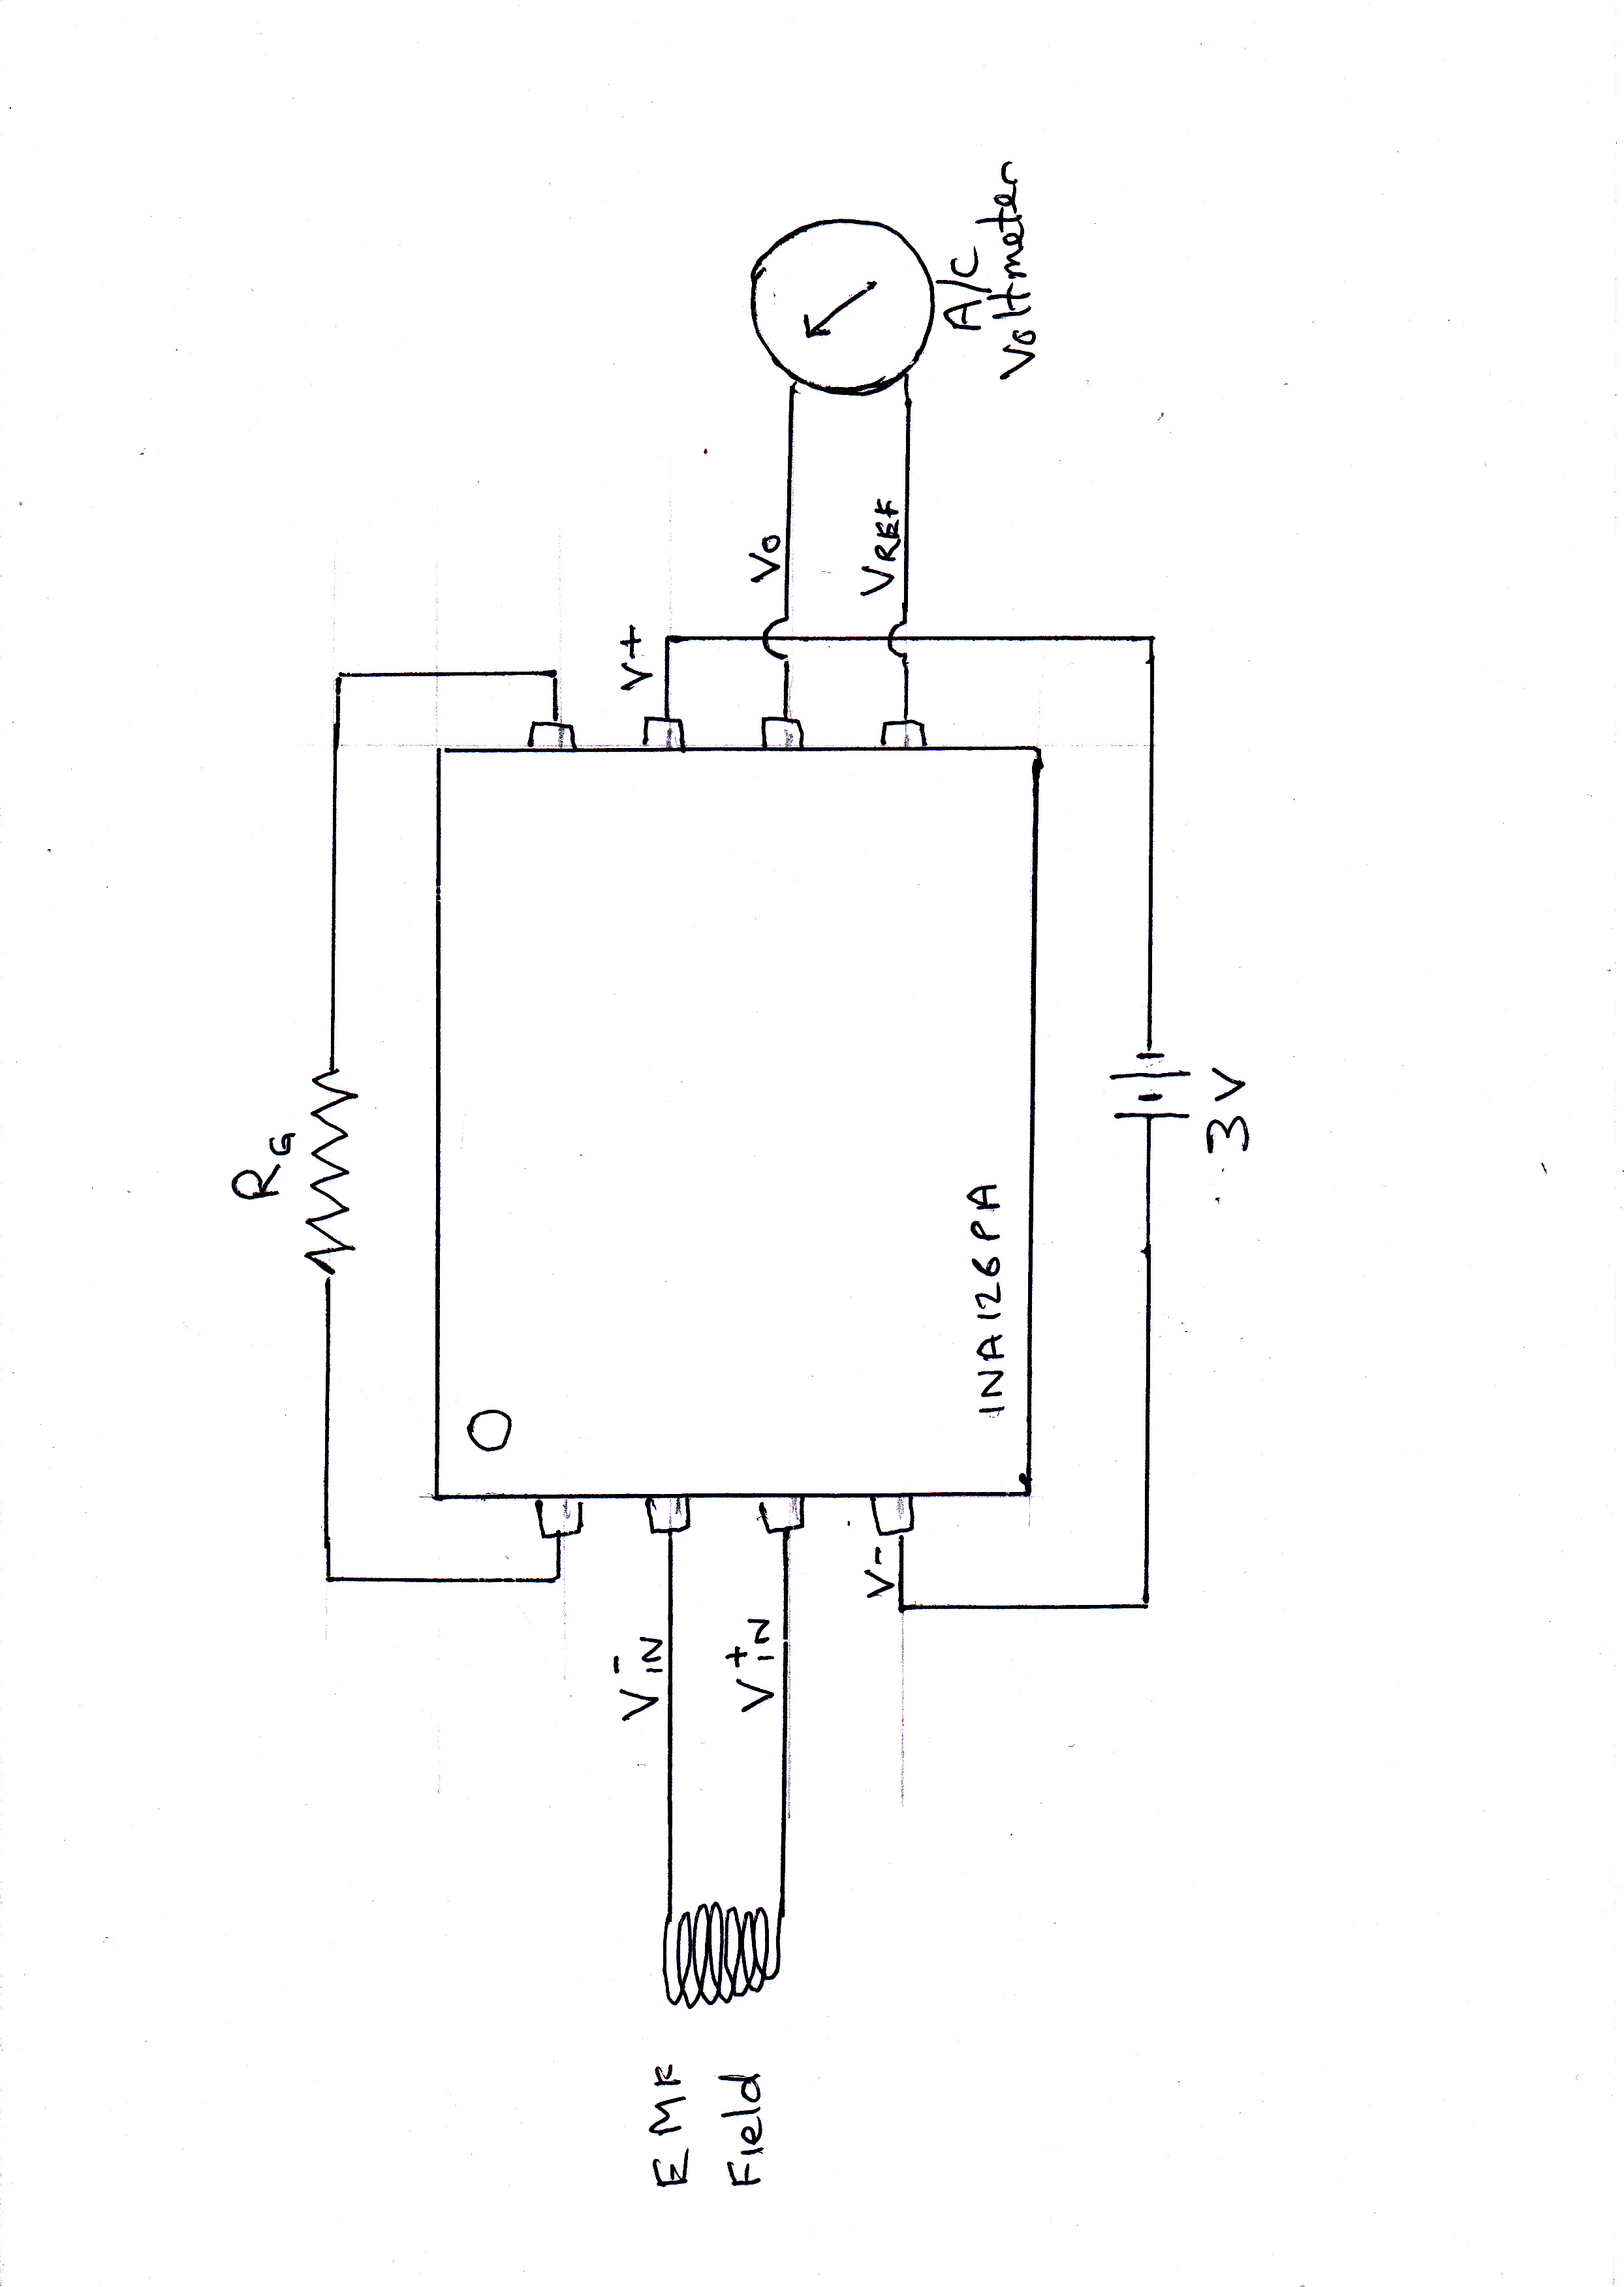 Resolved Ina126 Amplifying A Very Small C Voltage Amplifiers Instrumentation Amplifier Circuit Diagram Alan